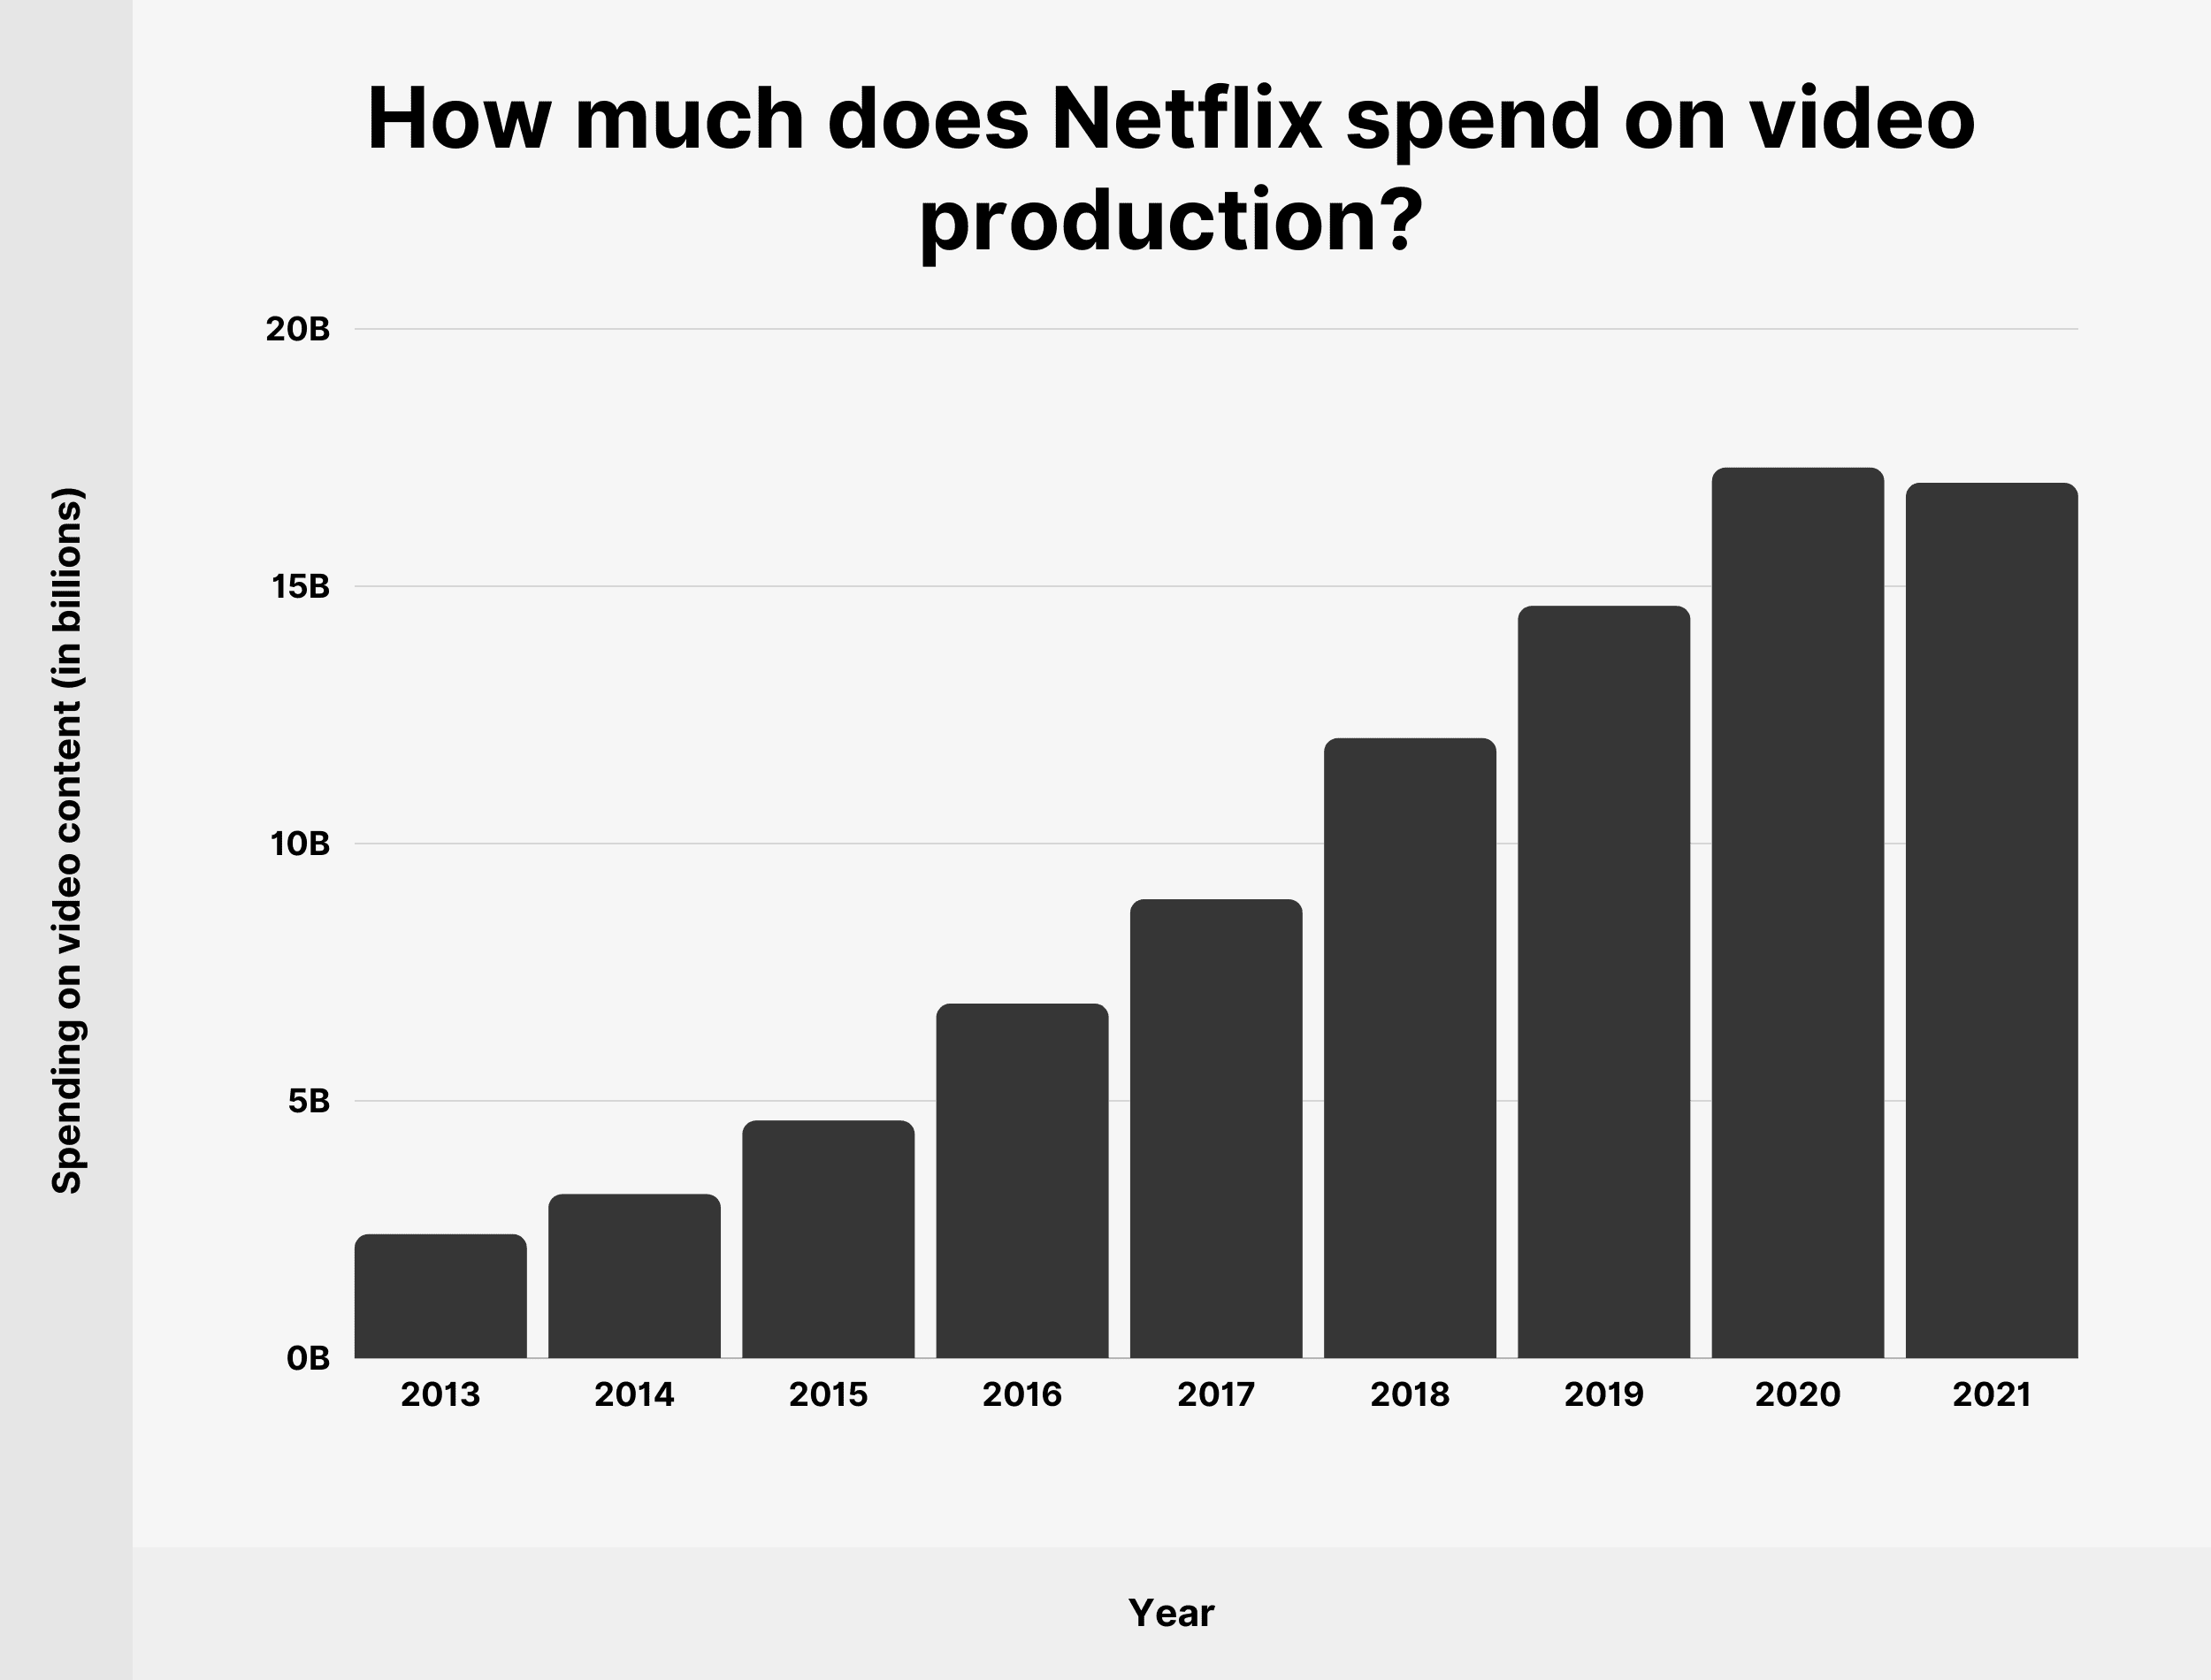 How much does Netflix spend on video production?